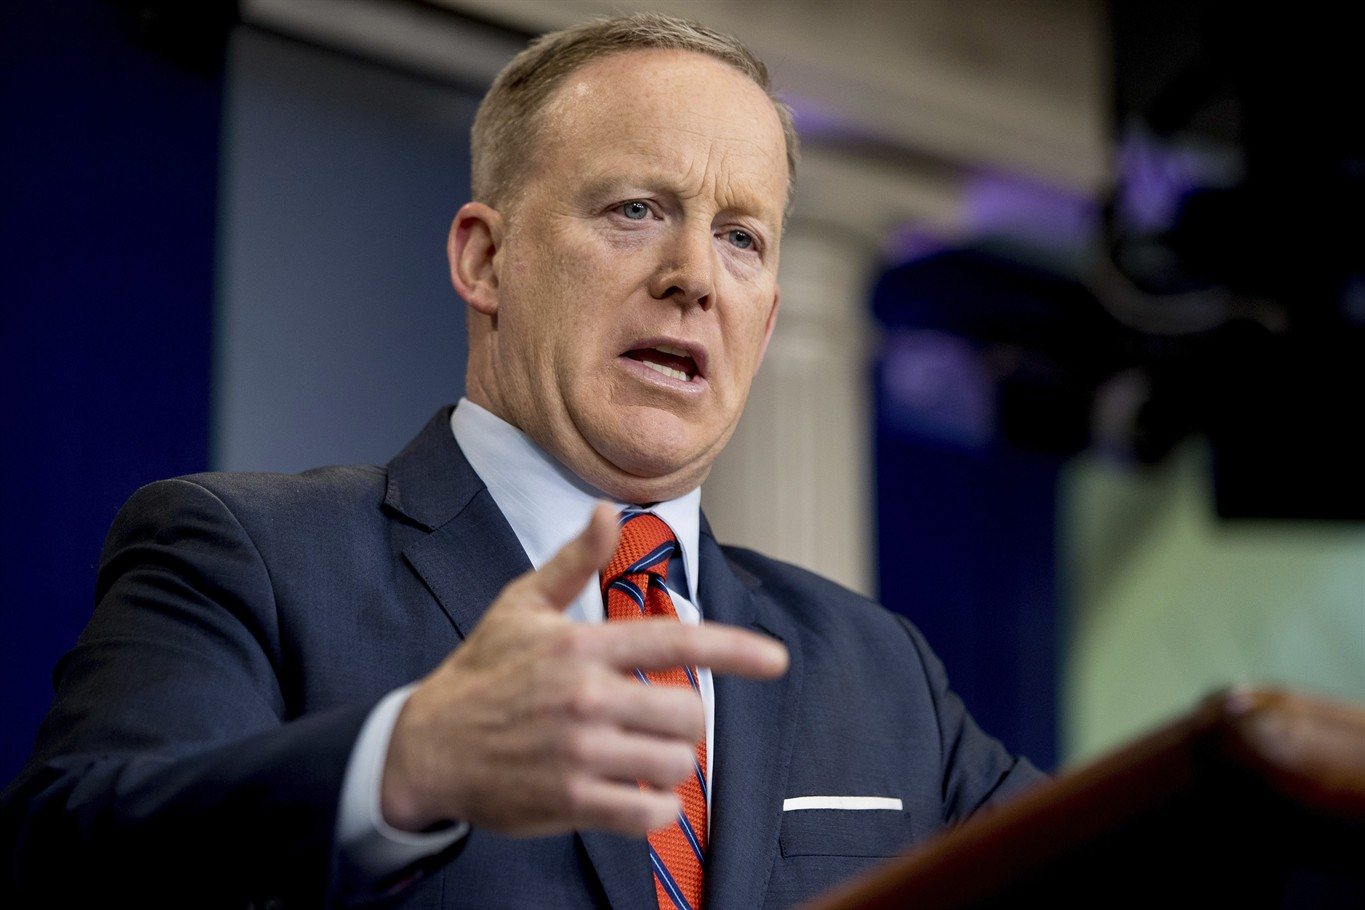 Germany on Spicer: Nazi parallels lead to 'nothing good'